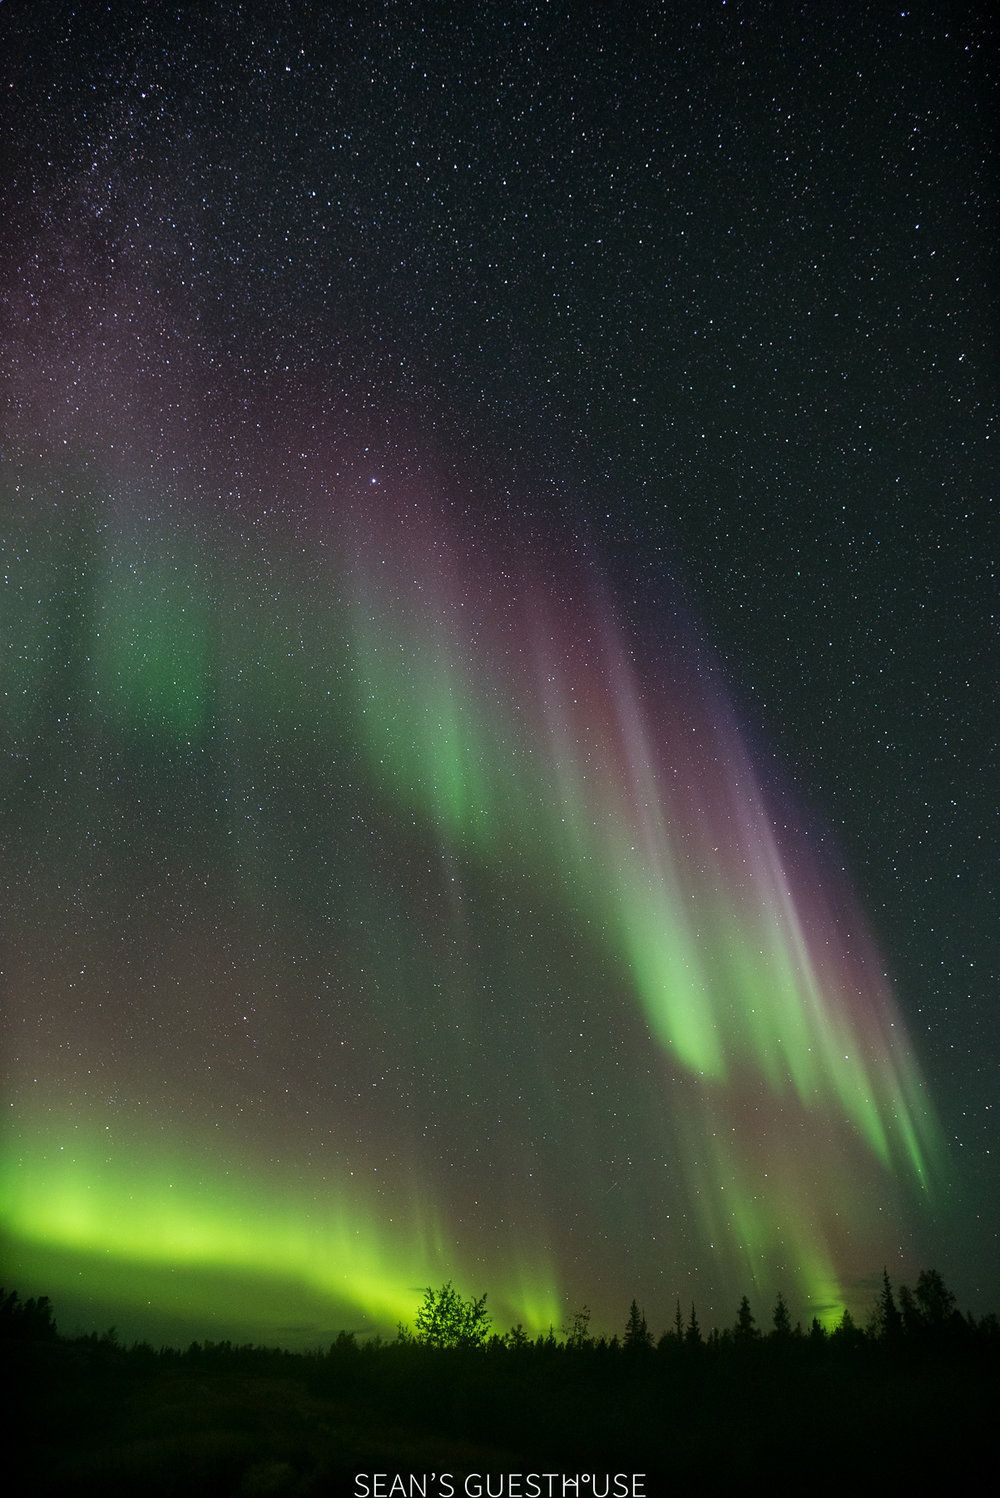 Sean's Guesthouse - Yellowknife - High Speed Solar Wind Stream - 8.jpg